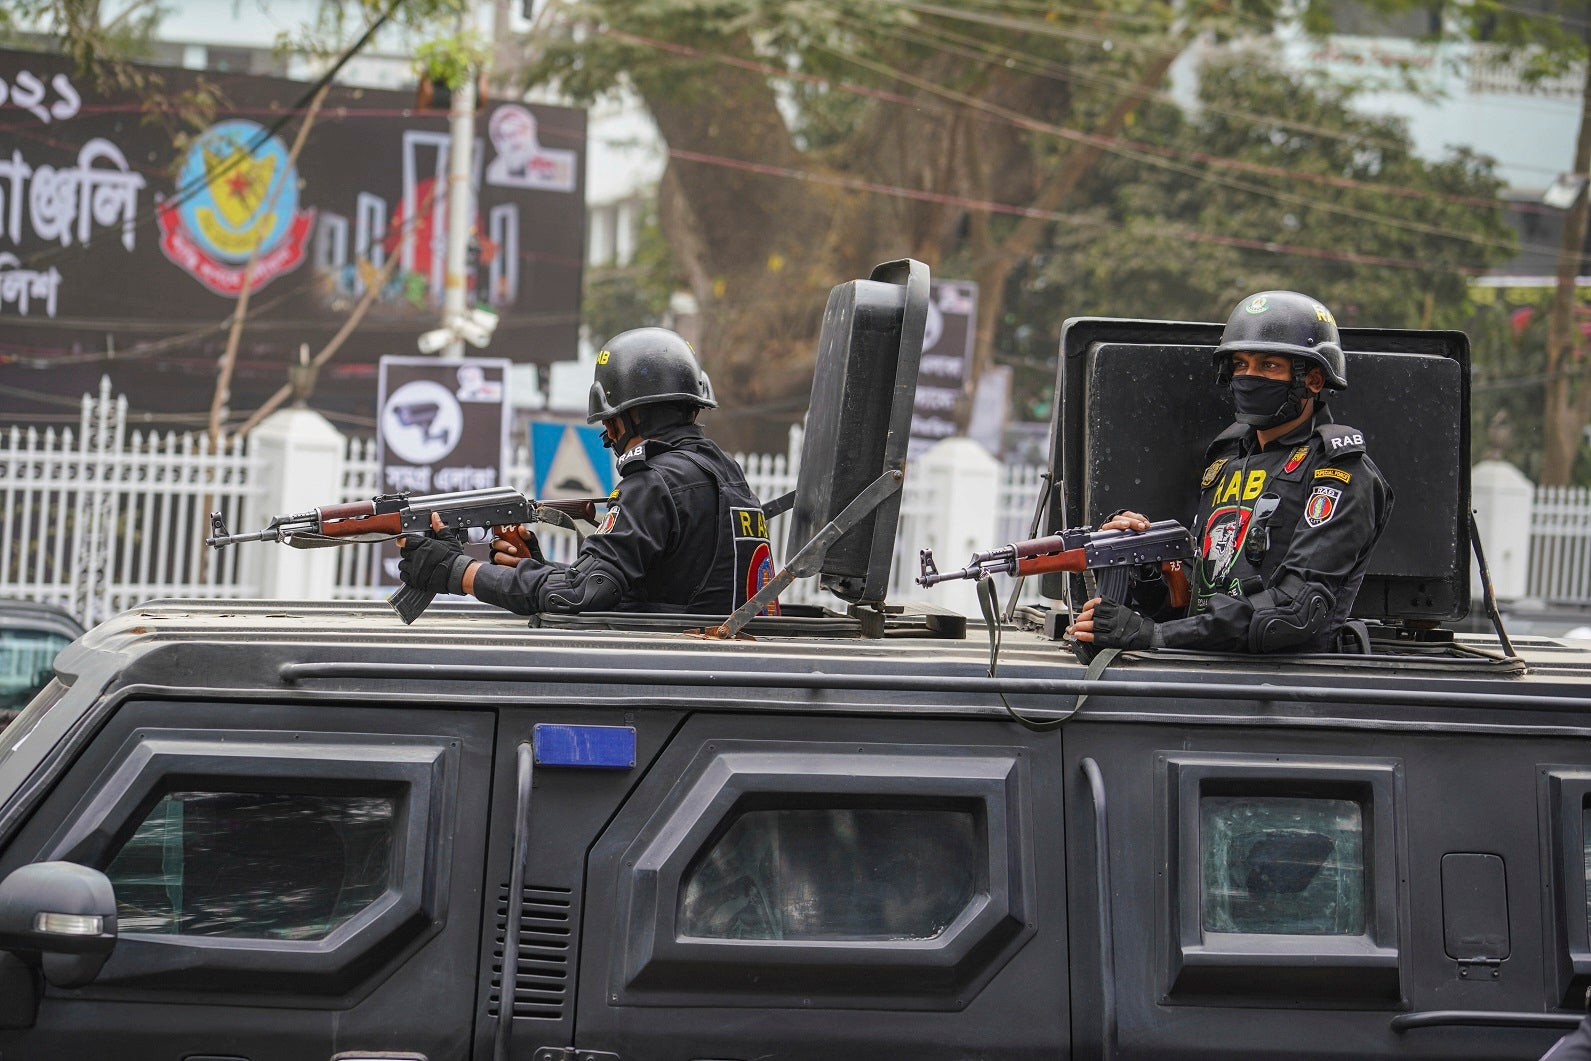 Bangladesh: Hold Security Forces Accountable for Torture